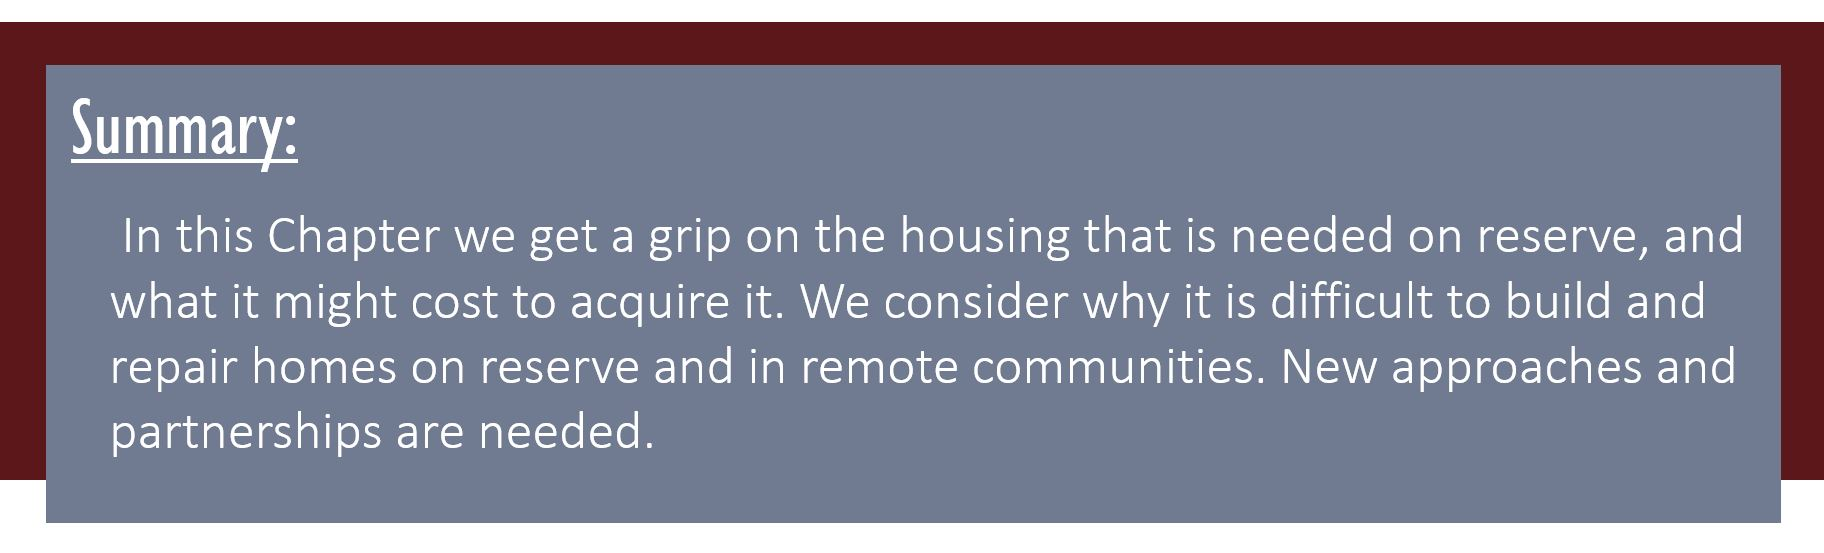 Summary: In this Chapter we get a grip on the housing that is needed on reserve, and what it might cost to acquire it. We consider why it is difficult to build and repair homes on reserve and in remote communities. New approaches and partnerships are needed.